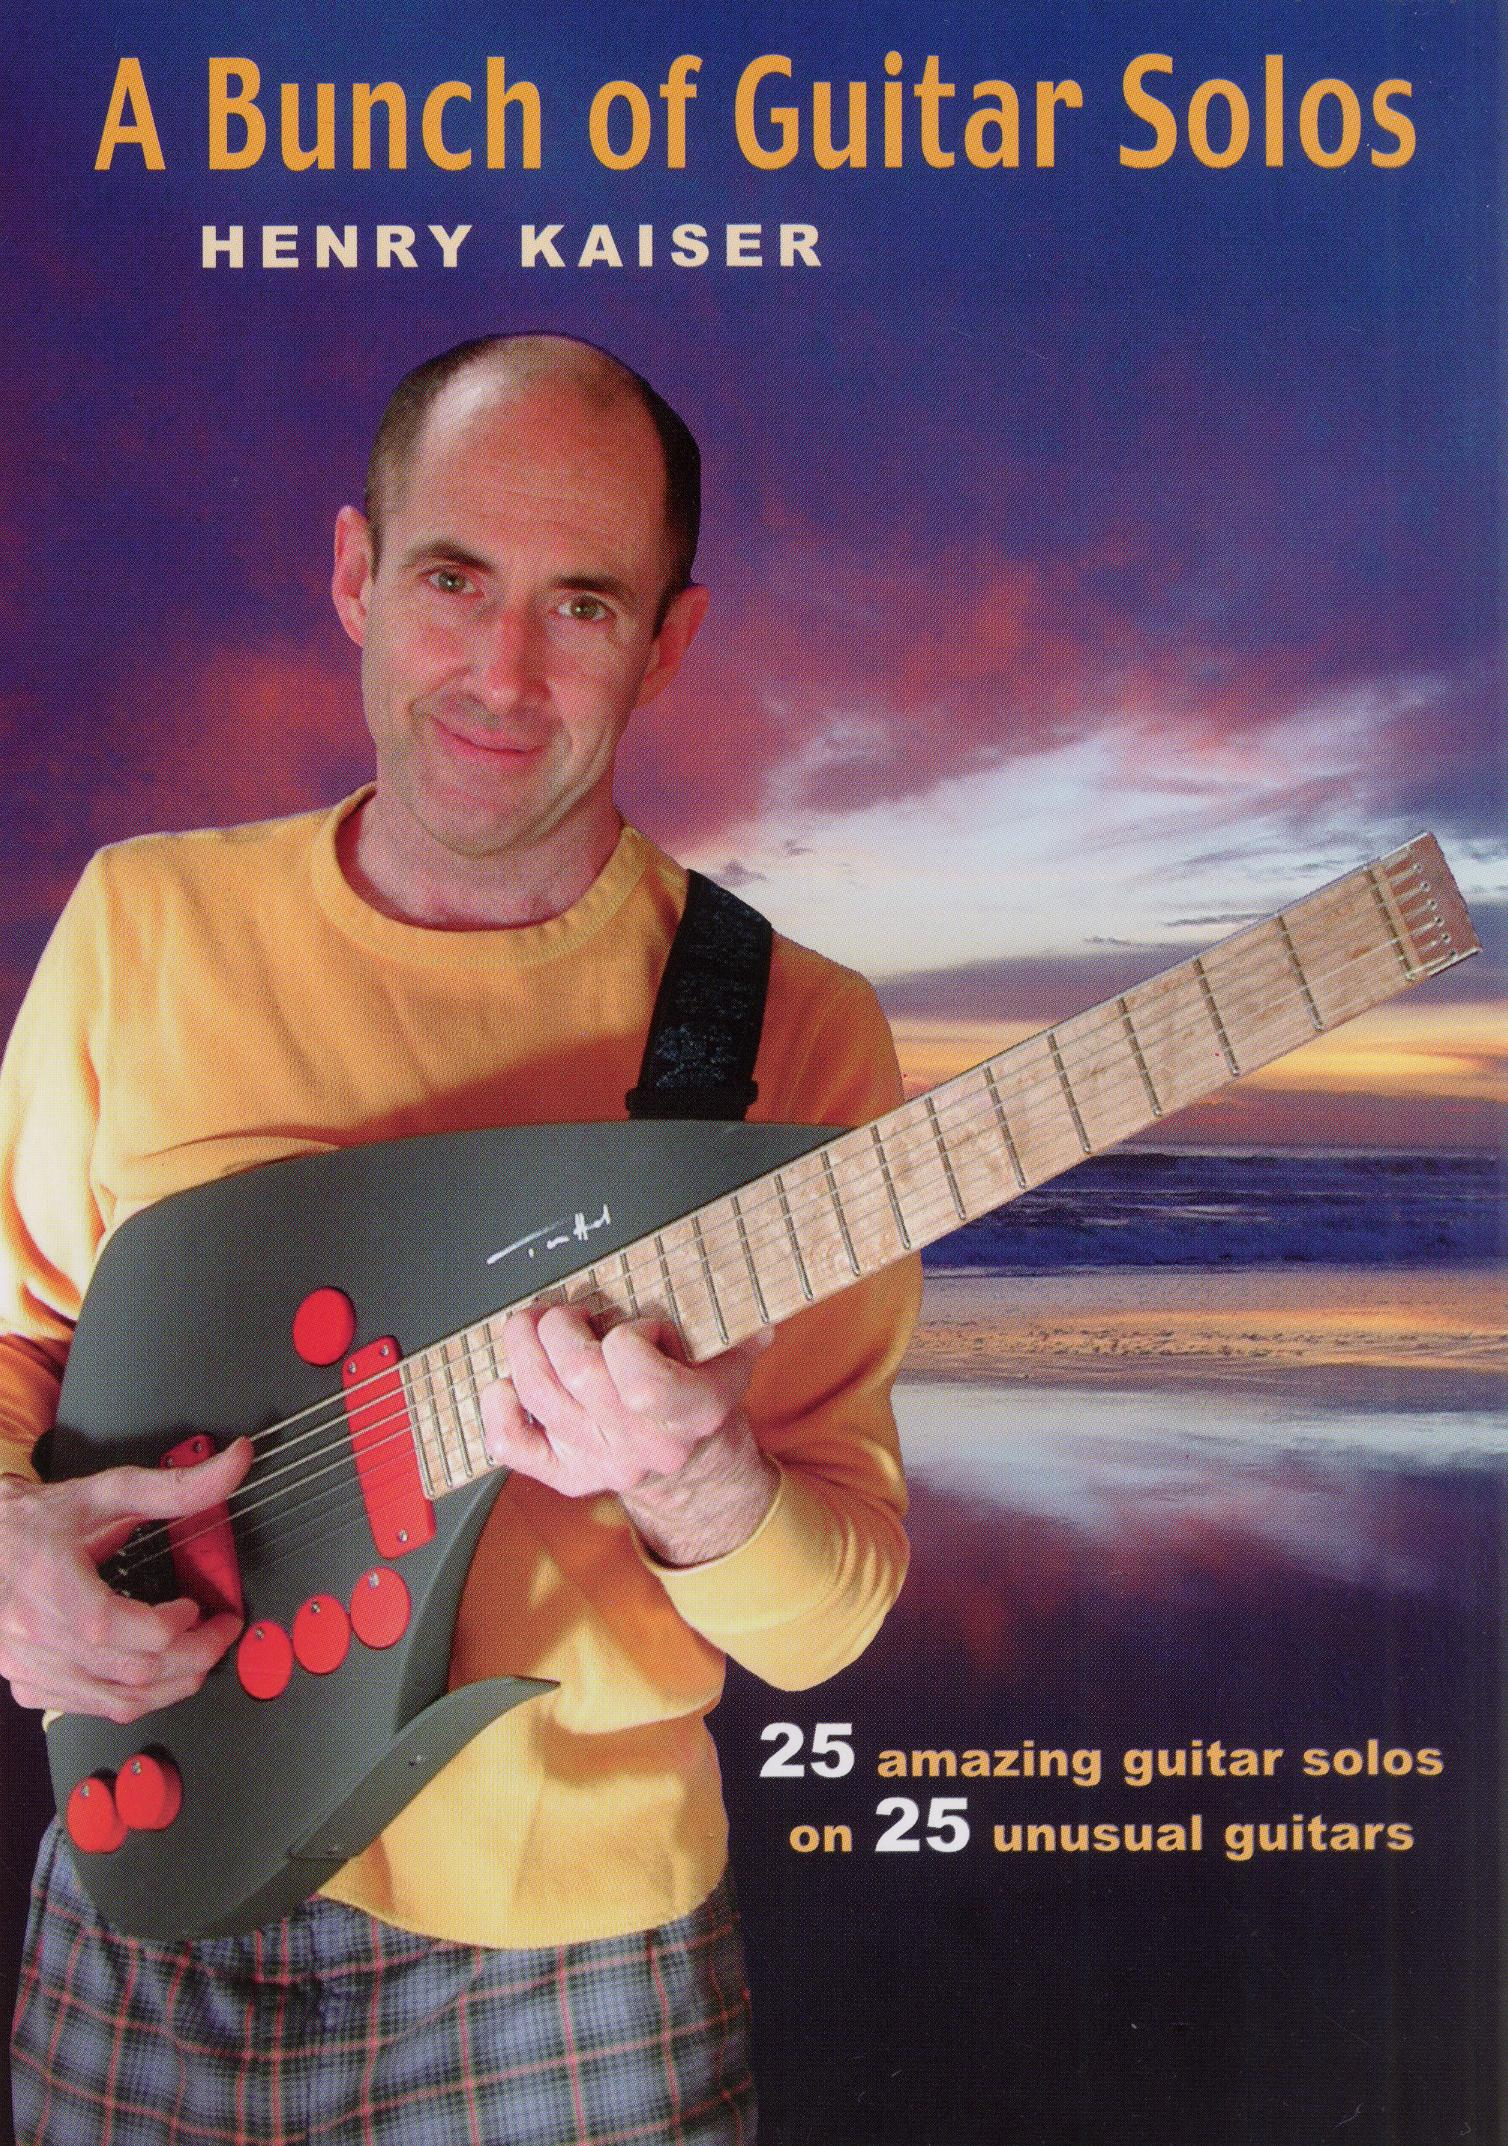 Henry Kaiser: A Bunch of Guitar Solos